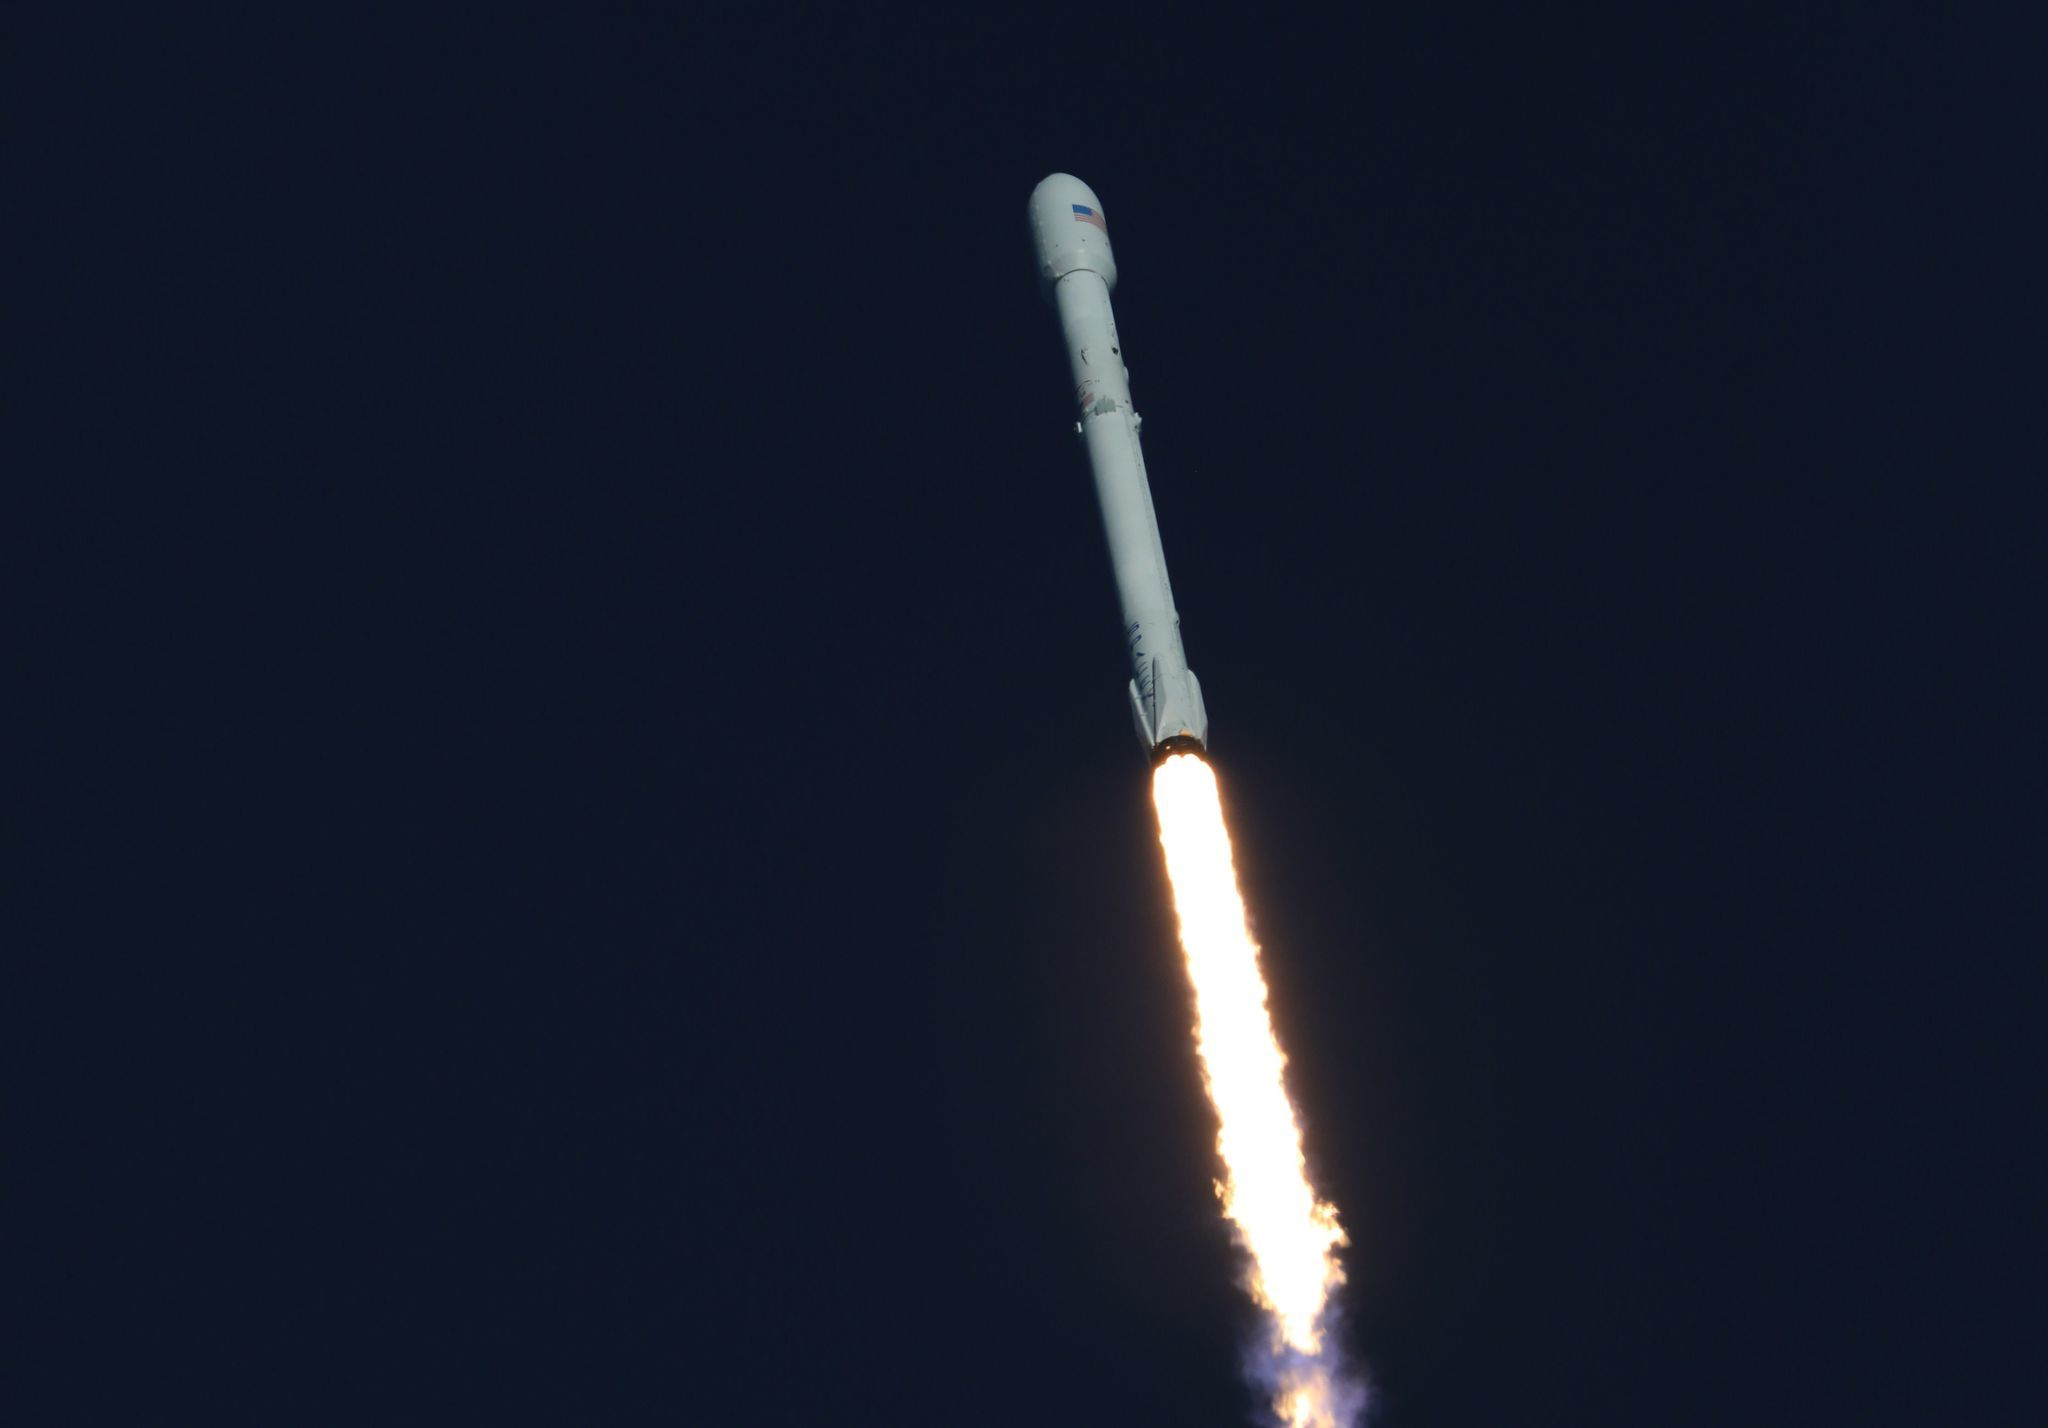 NASA advisers say SpaceX rocket technology could put lives at risk